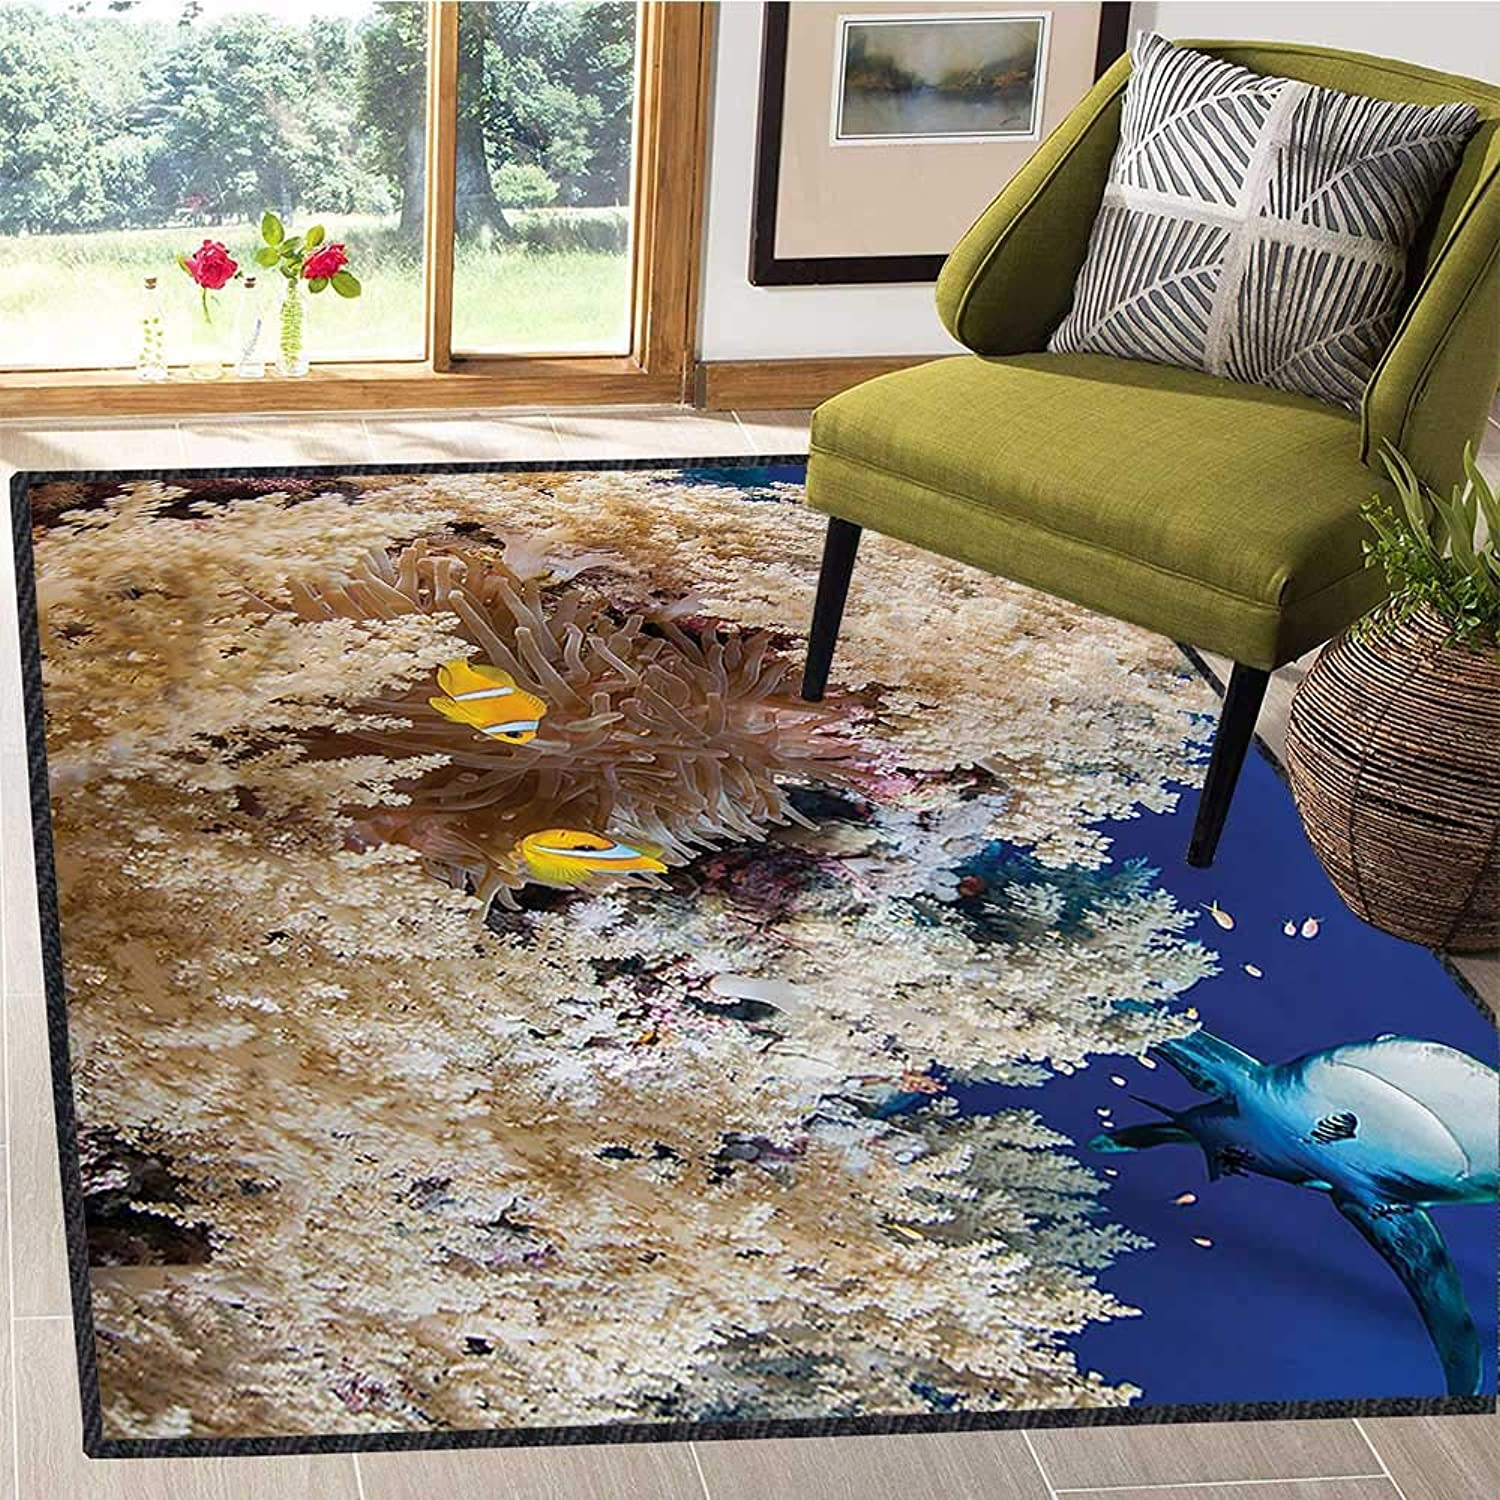 Shark, Floor Mat for Kids, Reef with Little Clown Fish and Sharks East Egyptian Red Sea Life Scenery Food Chain, Door Mats for Inside Non Slip Backing 5x8 Ft bluee Cream